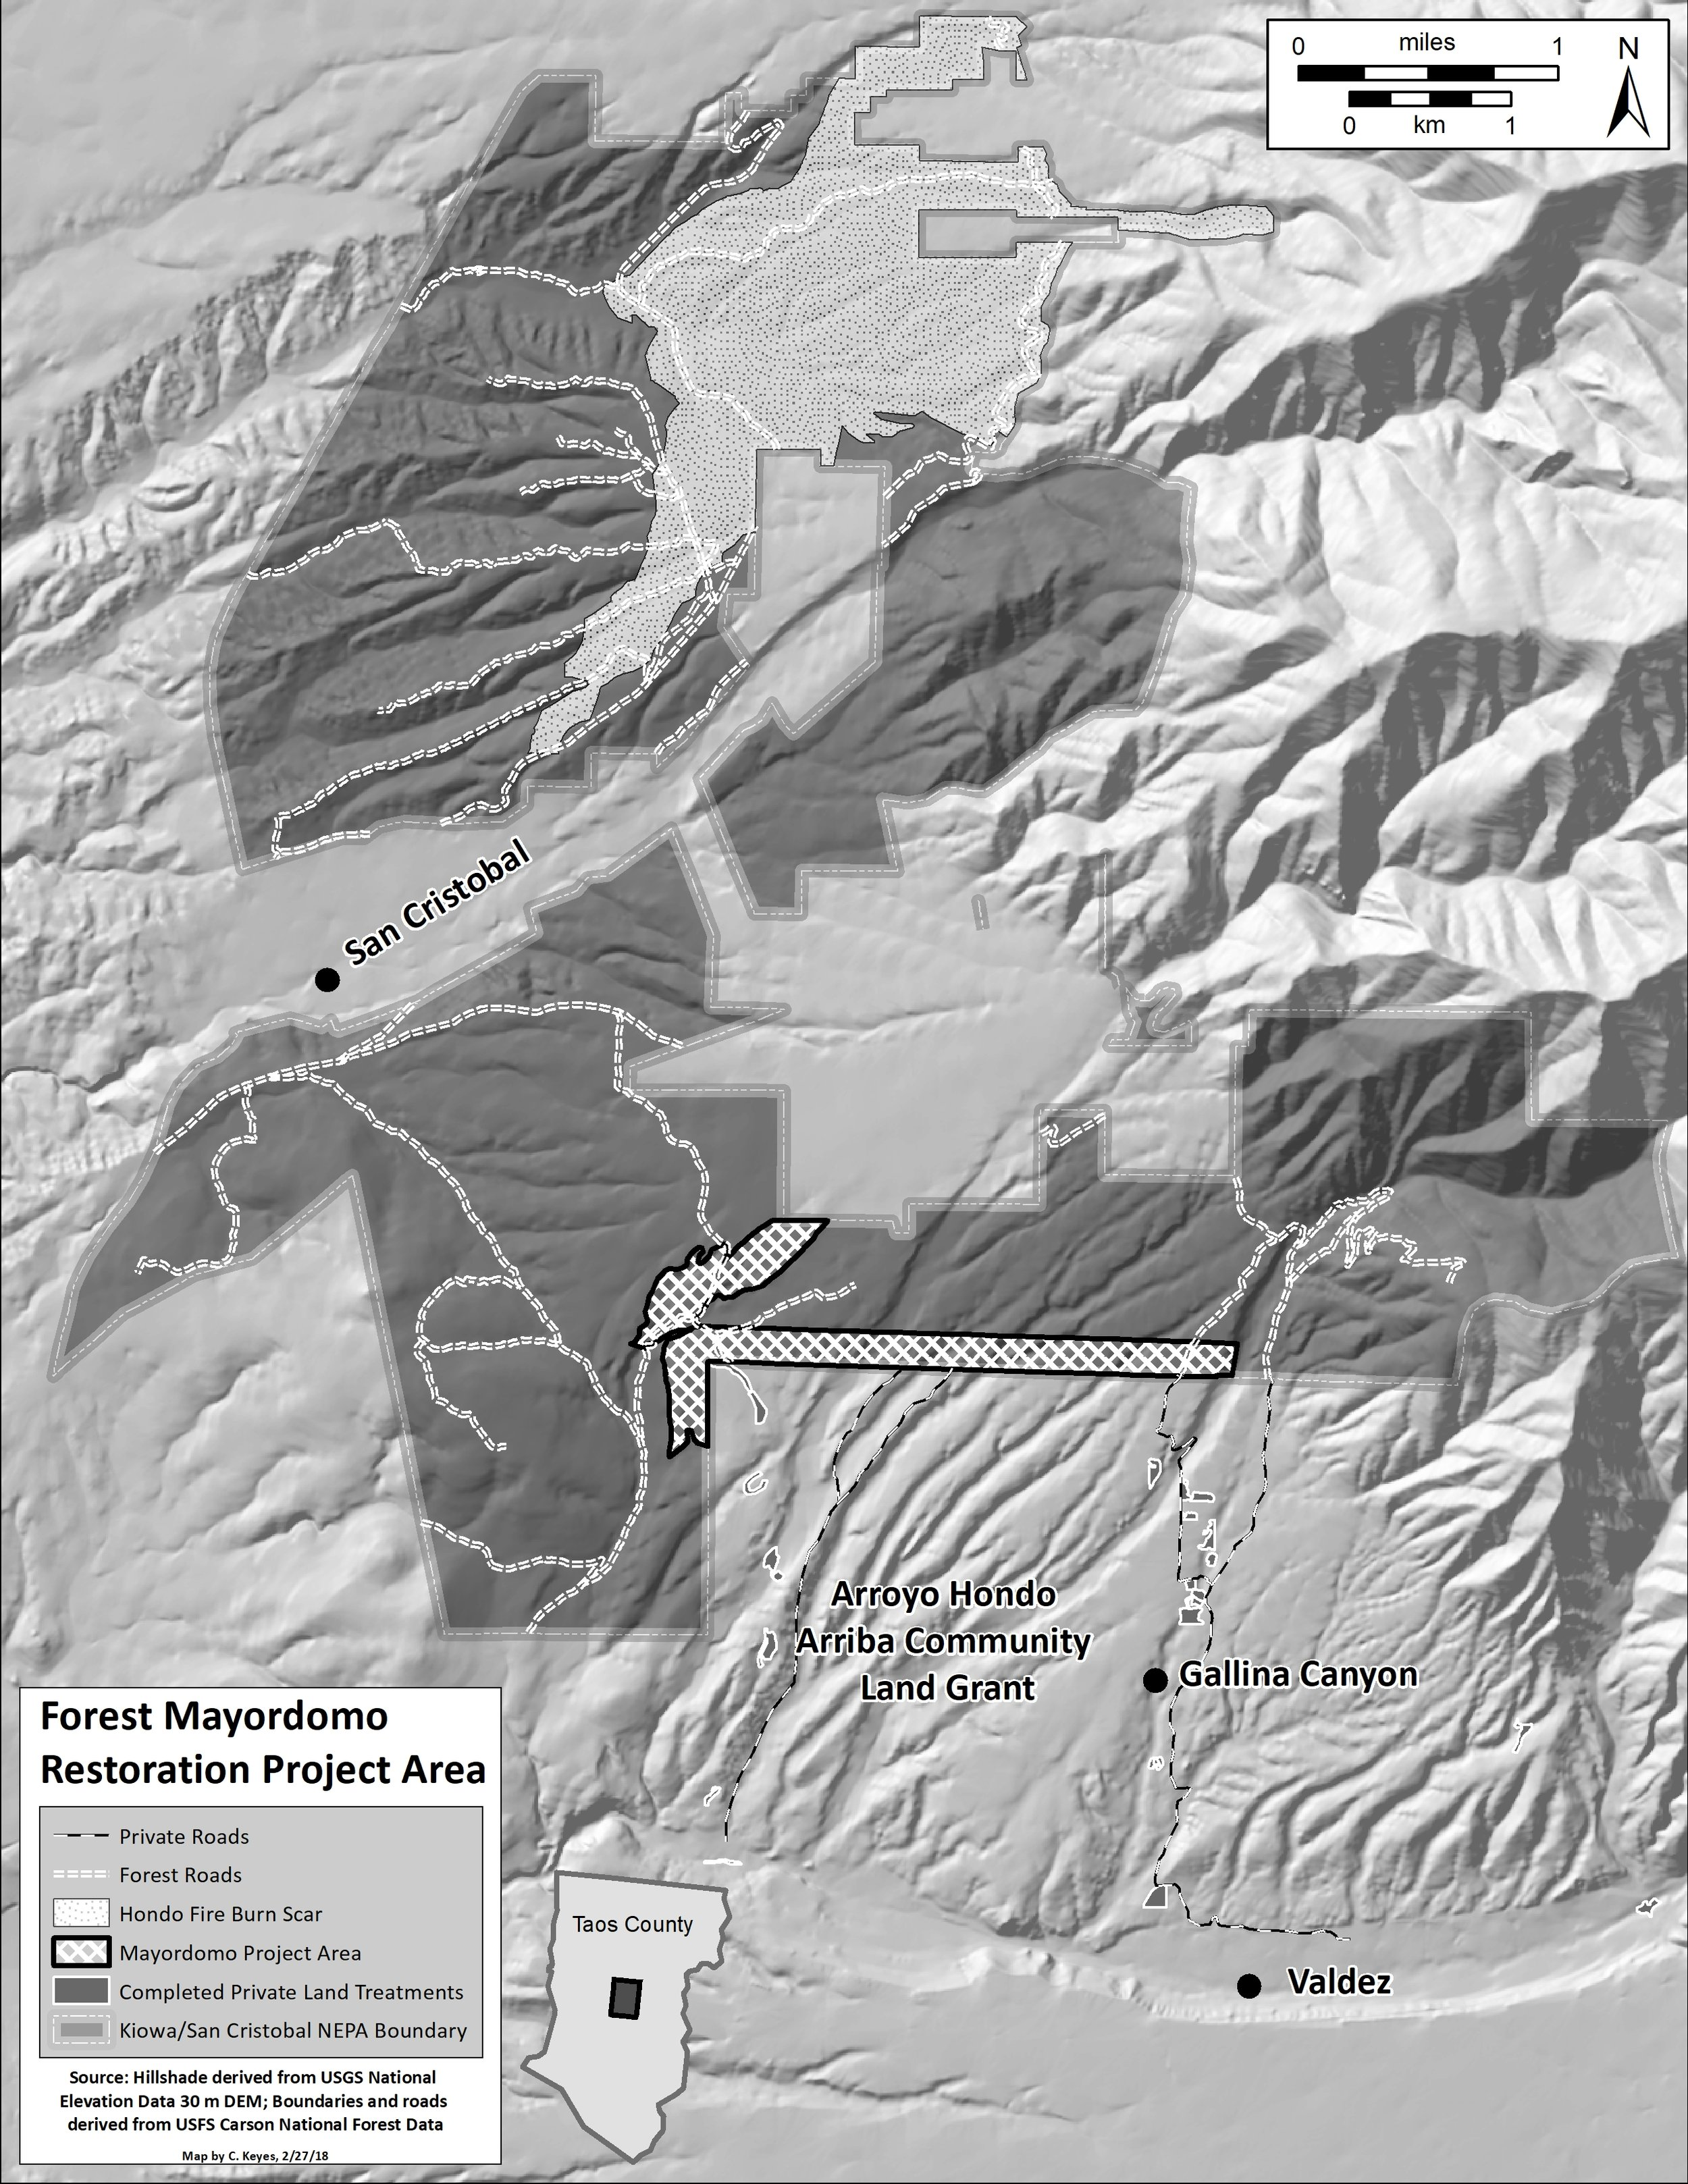 Forest Mayordomo CFRP project site - The 300 acres to be thinned by the Forest Council and participating leñeros is located north of Valdez, within the Carson National Forest. The project area includes limited access from the south via Gallina Canyon Road and Turkey Springs Road as well as public access from the north via Forest Road. Click here to download a full-size copy of this map.